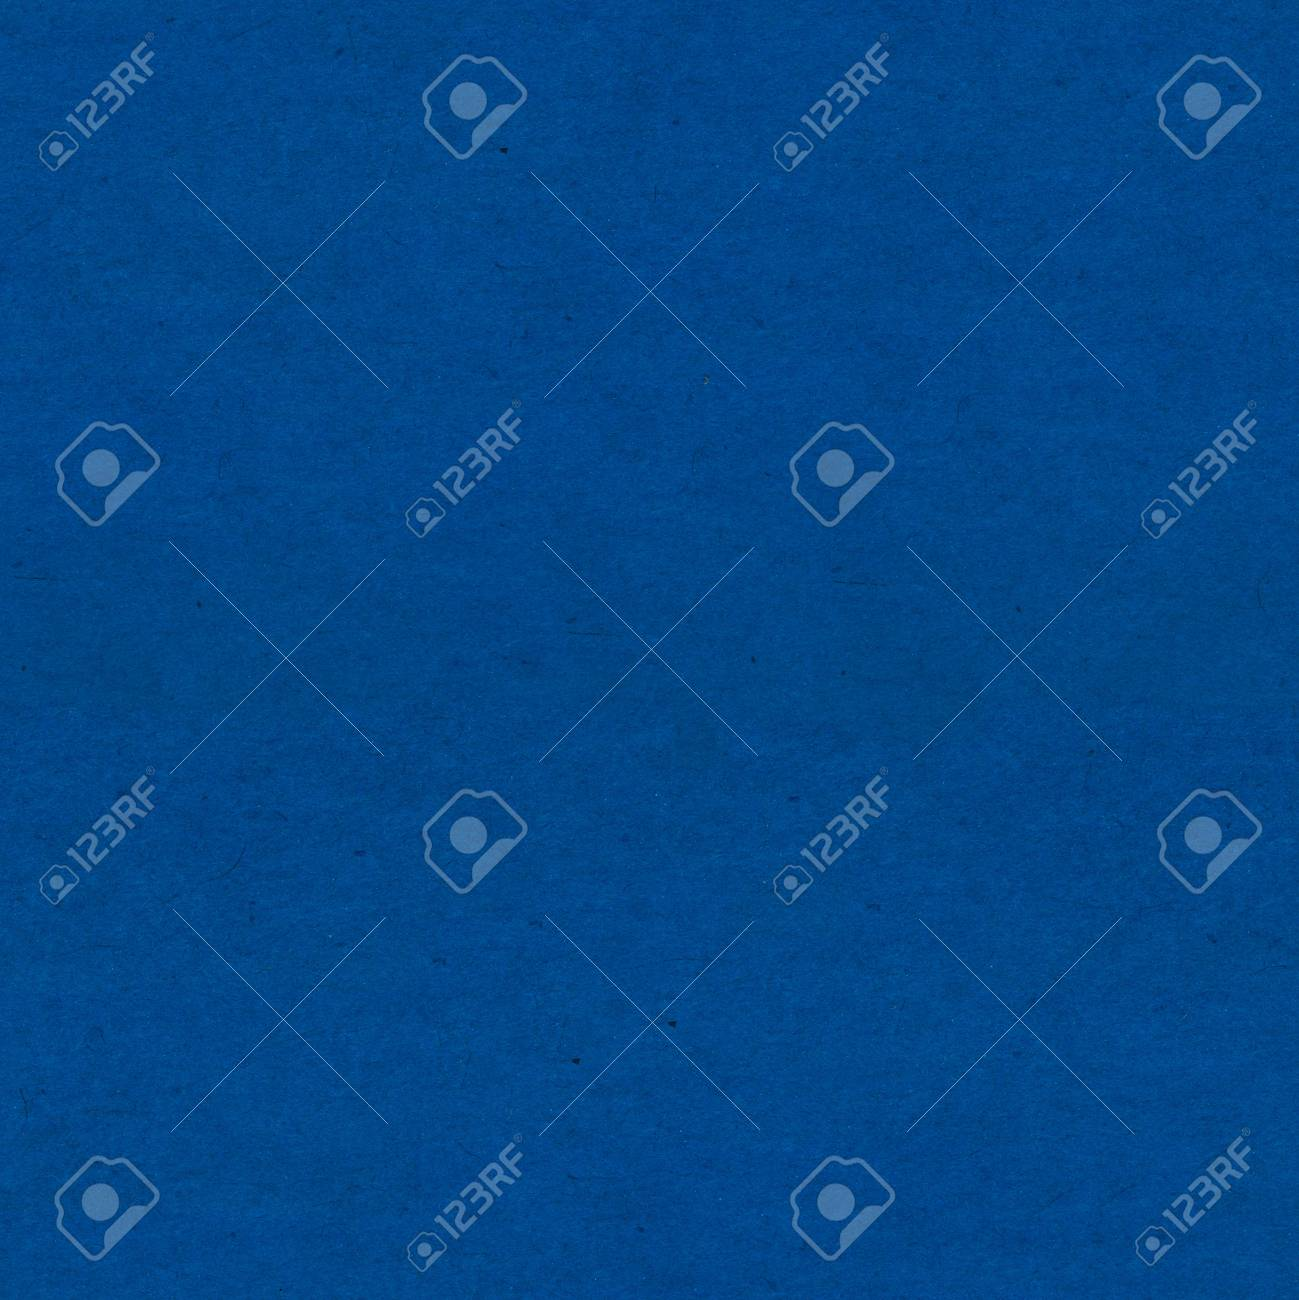 Blue Background With Ornaments. Seamless Square Texture, Tile Ready. High  Quality Texture In